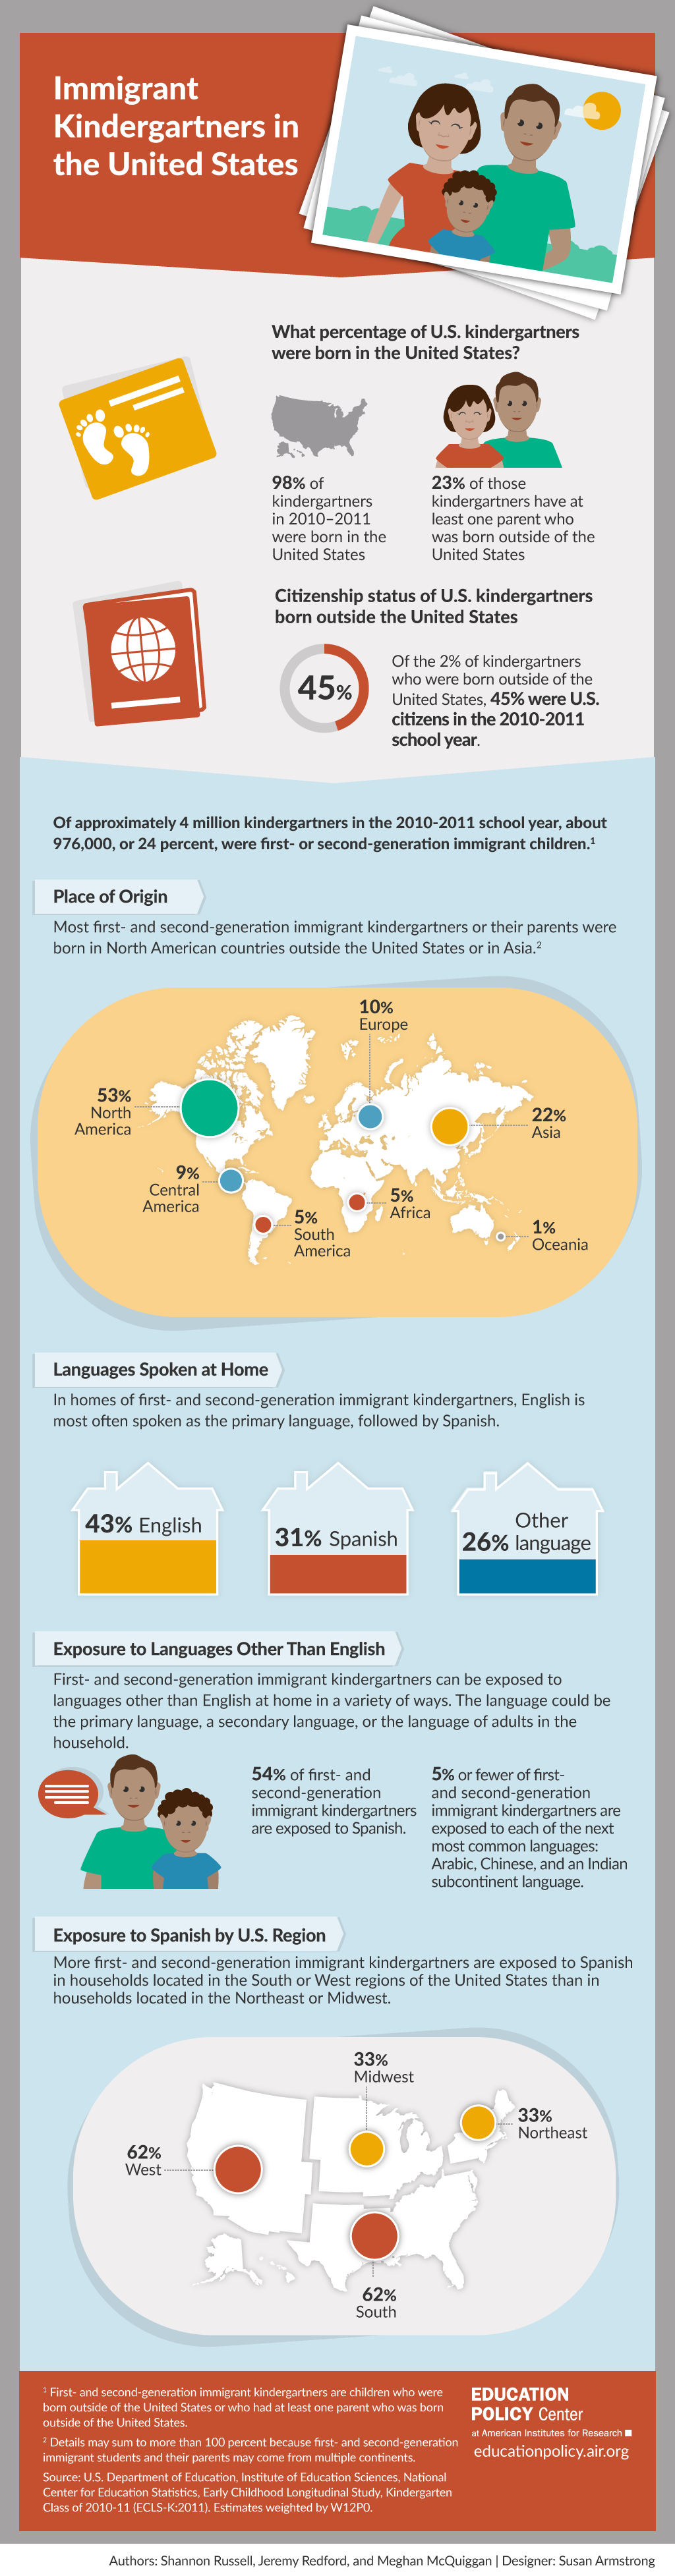 Infographic: Immigrant Kindergartners in the U.S.